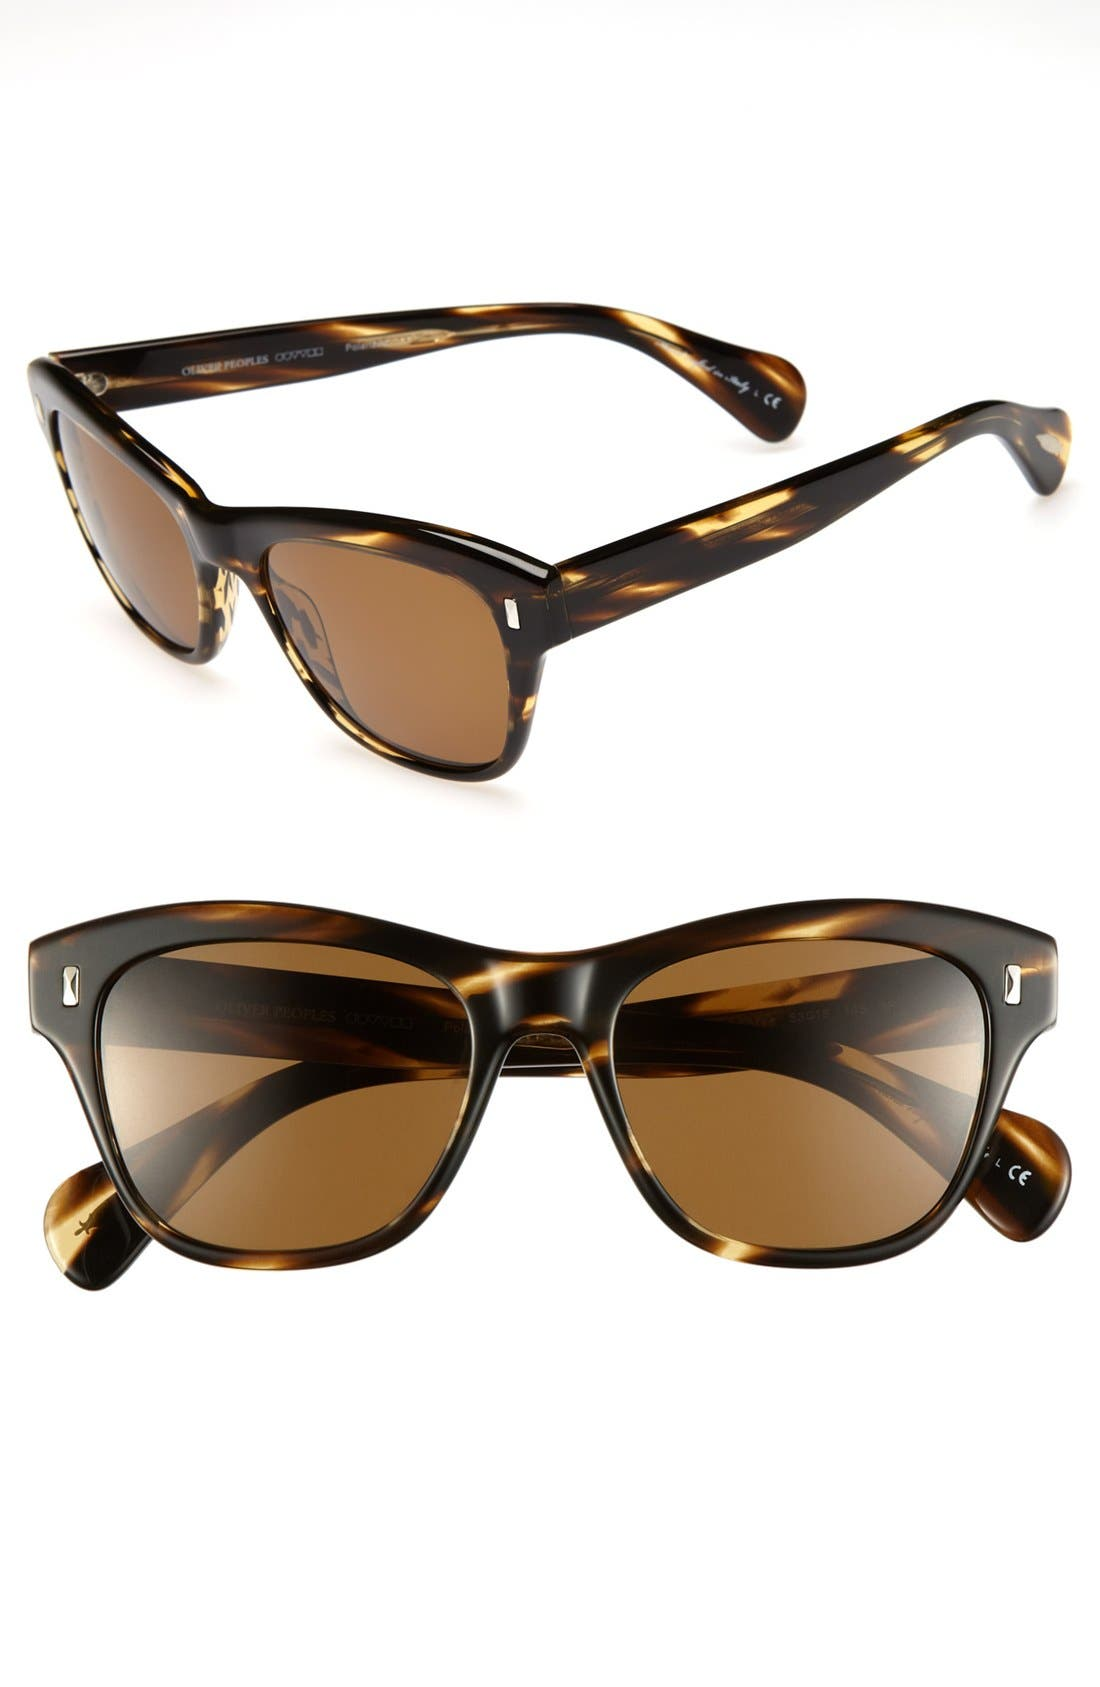 Main Image - Oliver Peoples 'Sofee' 53mm Sunglasses